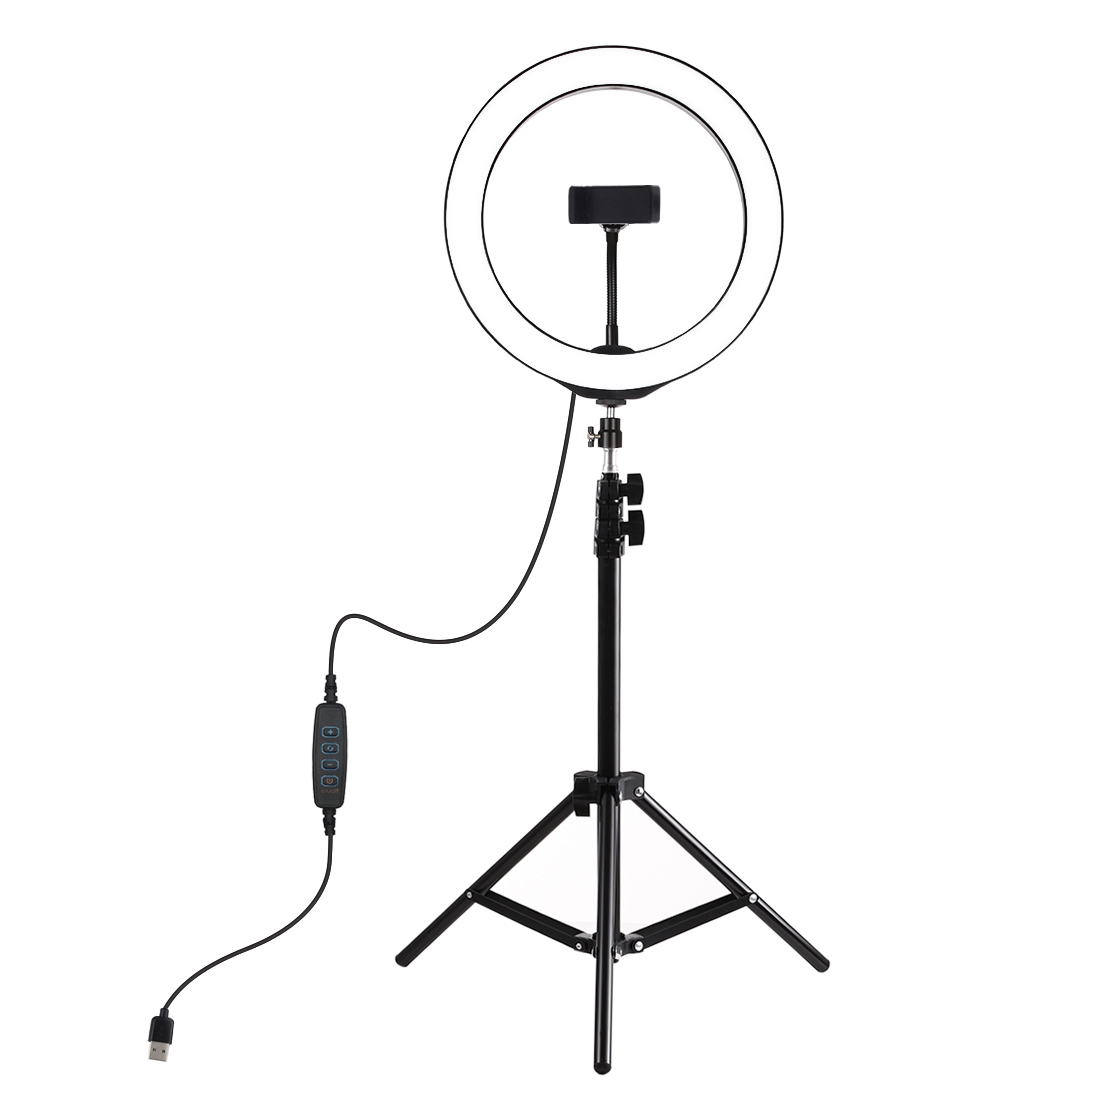 Dimmable LED Ring Light with 360 degree Rotatable Phone Holder for YouTube Lighting Portrait Video Shooting Make Up